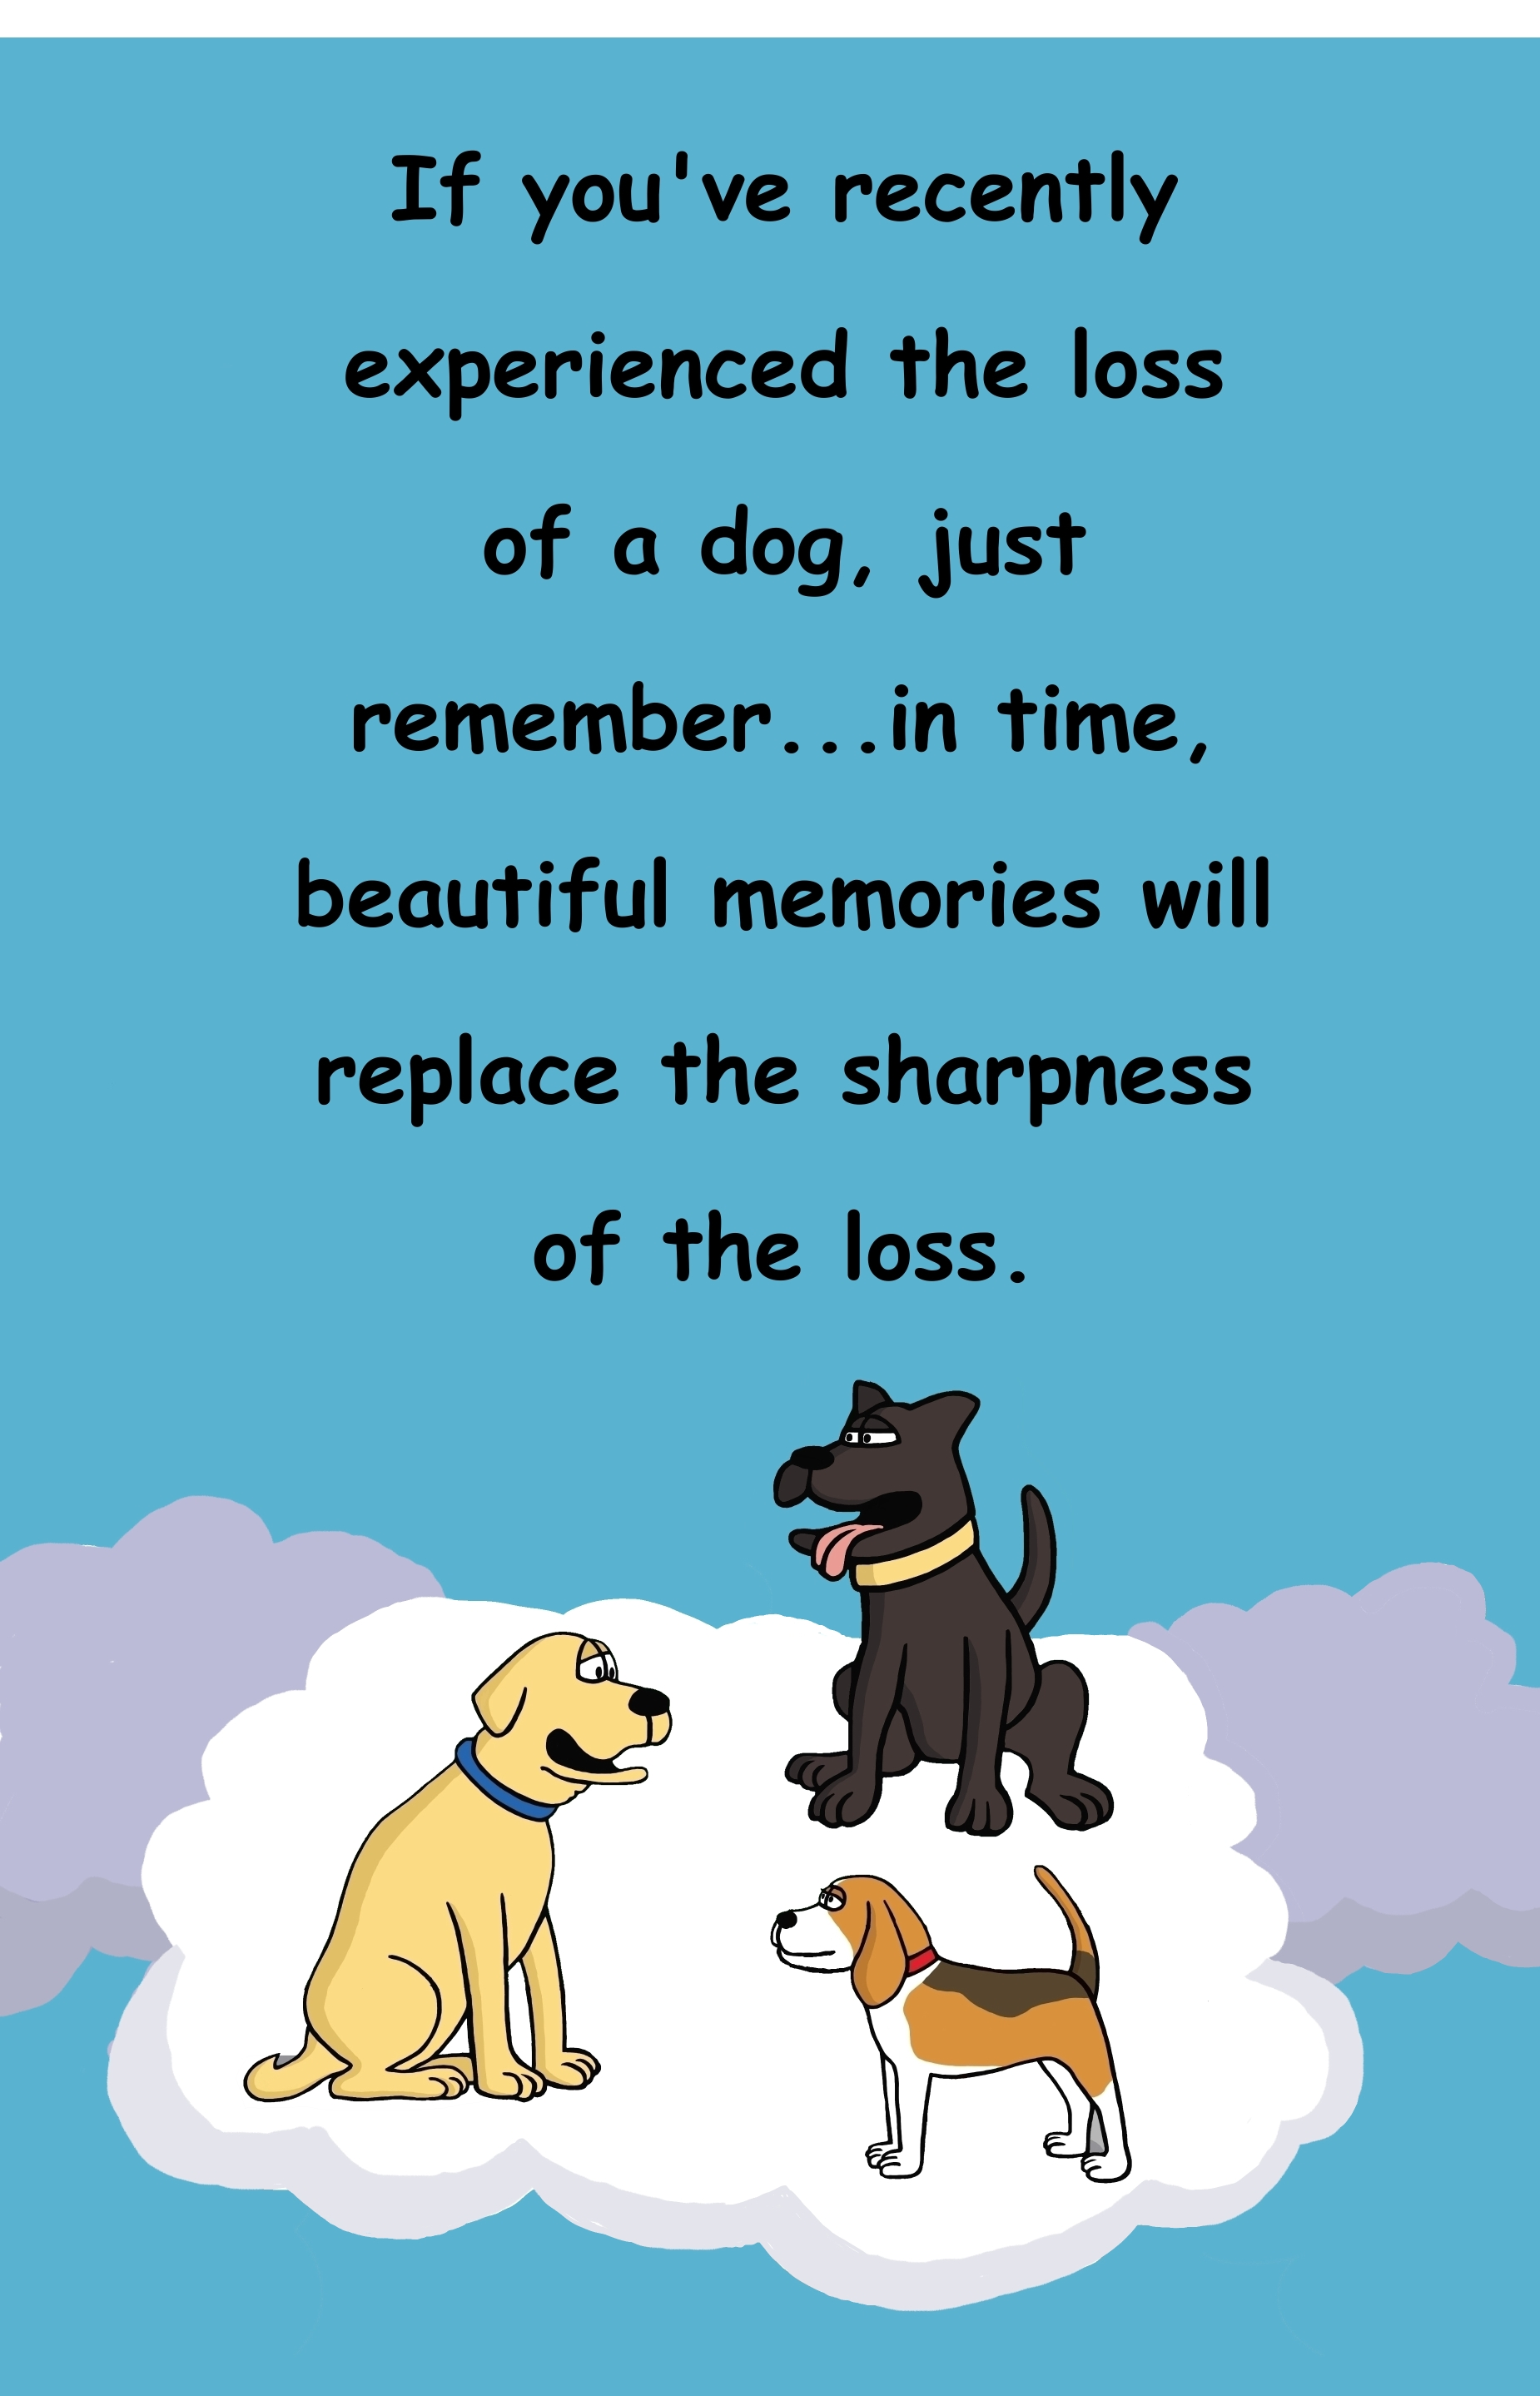 If you've recently experienced the loss of a dog, just remember...in time, beautiful memories will replace the sharpness of the loss.